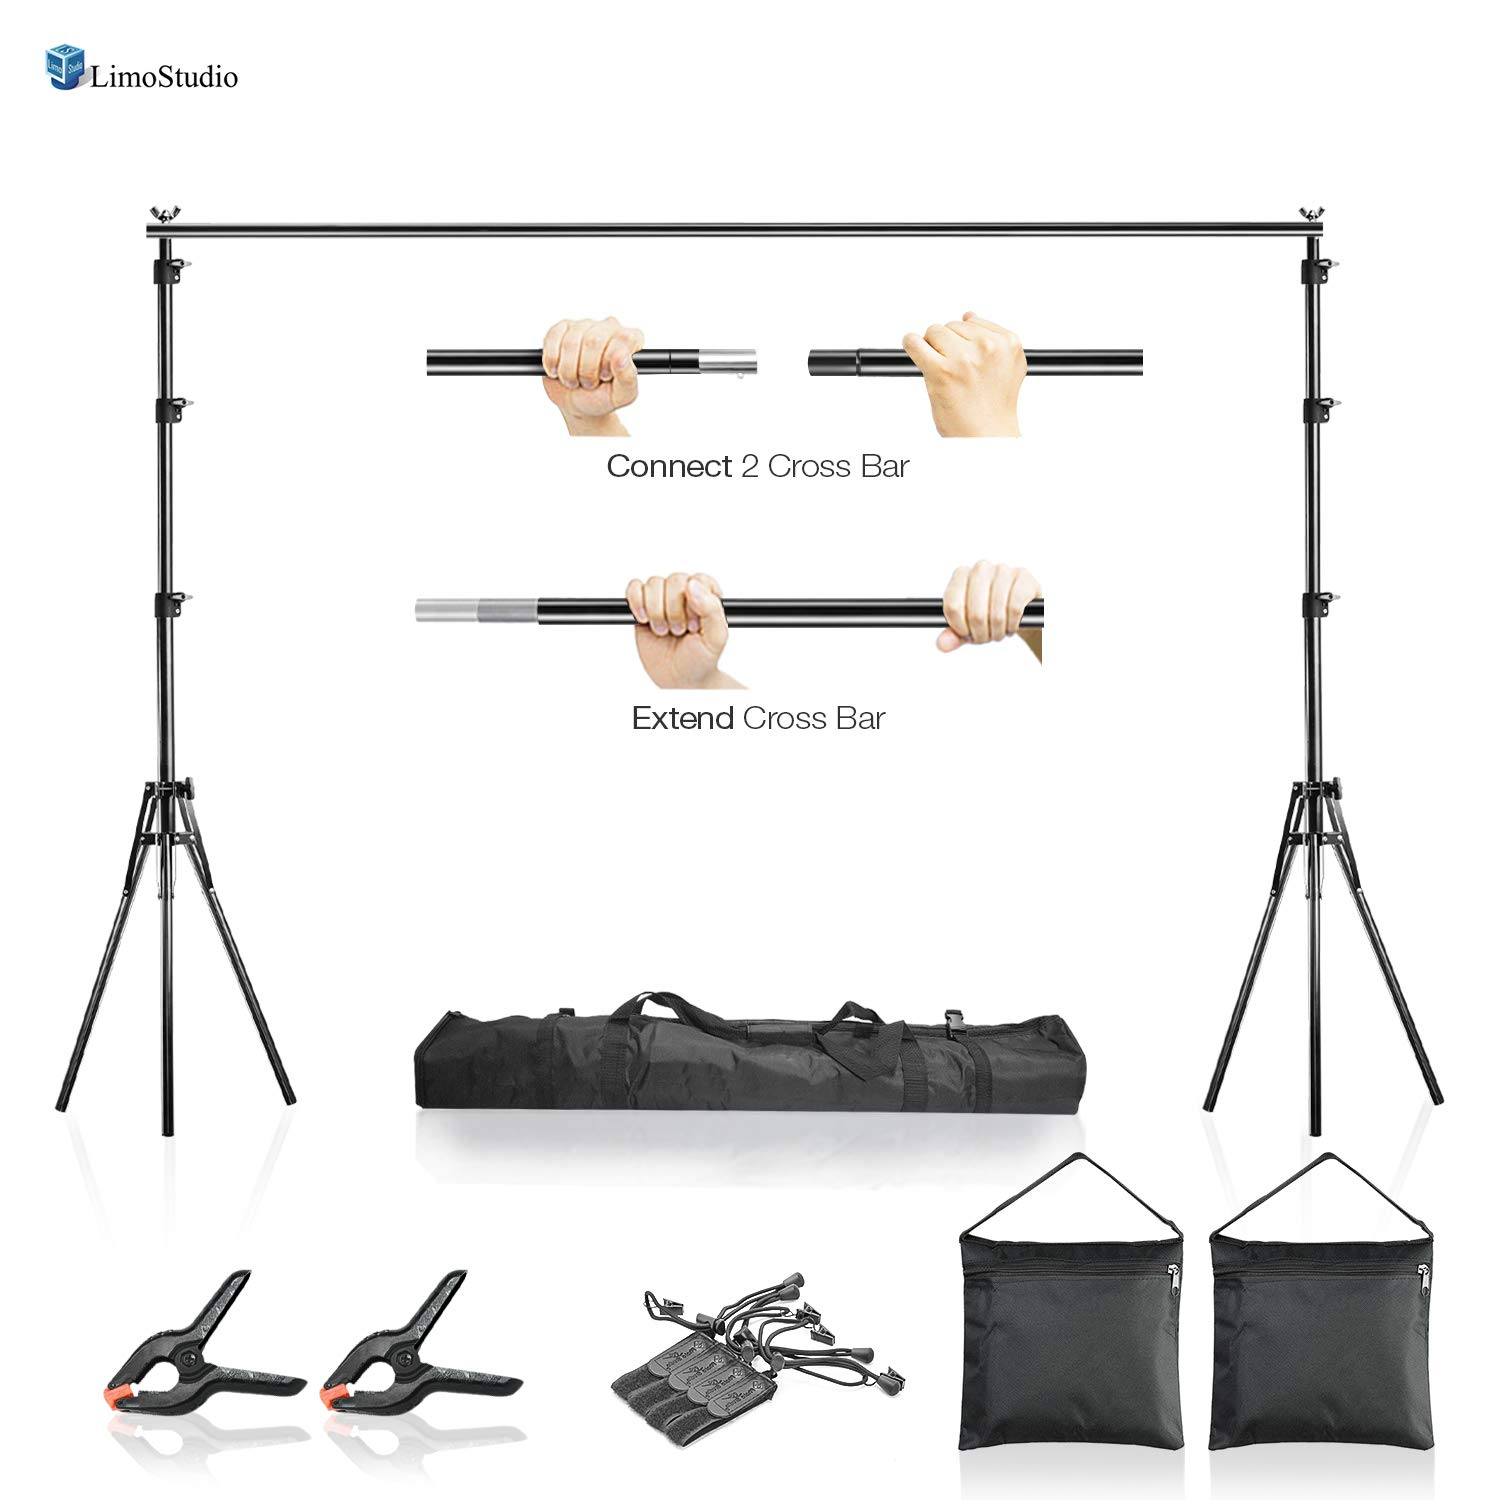 LimoStudio AGG2612 10 x 7.5 ft Adjustable Photo Video Background Muslin Stand, Backdrop Support System Kit with Accessories, Spring Clamp, Sand Bag by LimoStudio